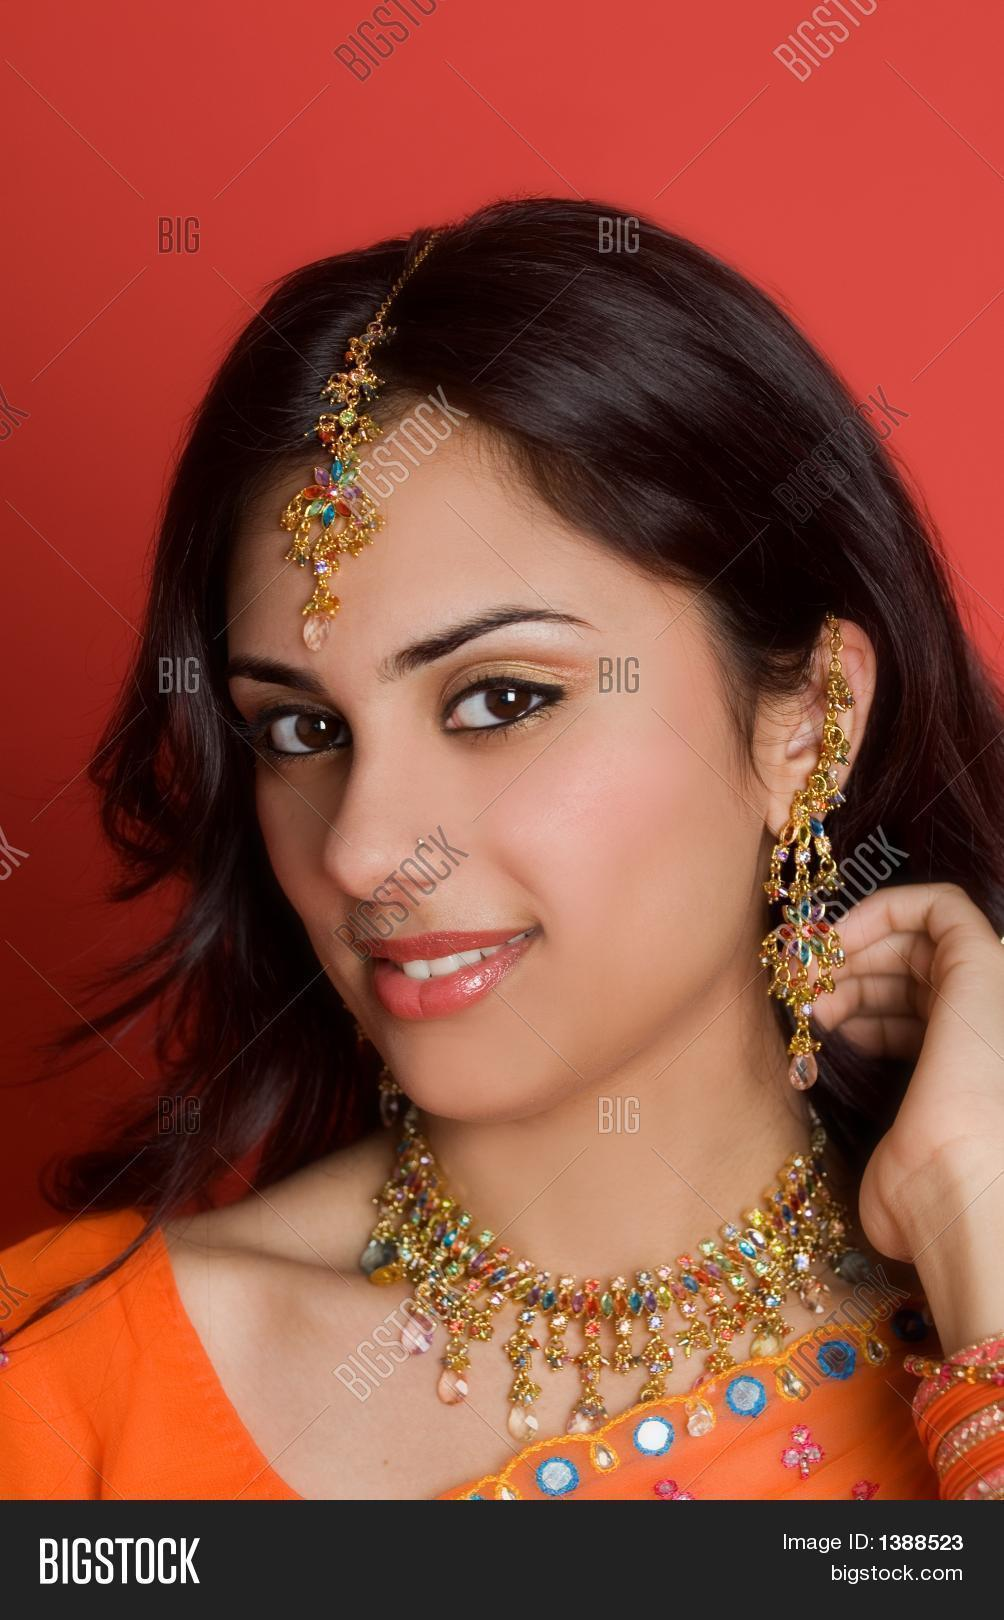 jenera hindu single women Jenera's best 100% free online dating site meet loads of available single women in jenera with mingle2's jenera dating services find a girlfriend or lover in jenera, or just have fun flirting online with jenera single girls.